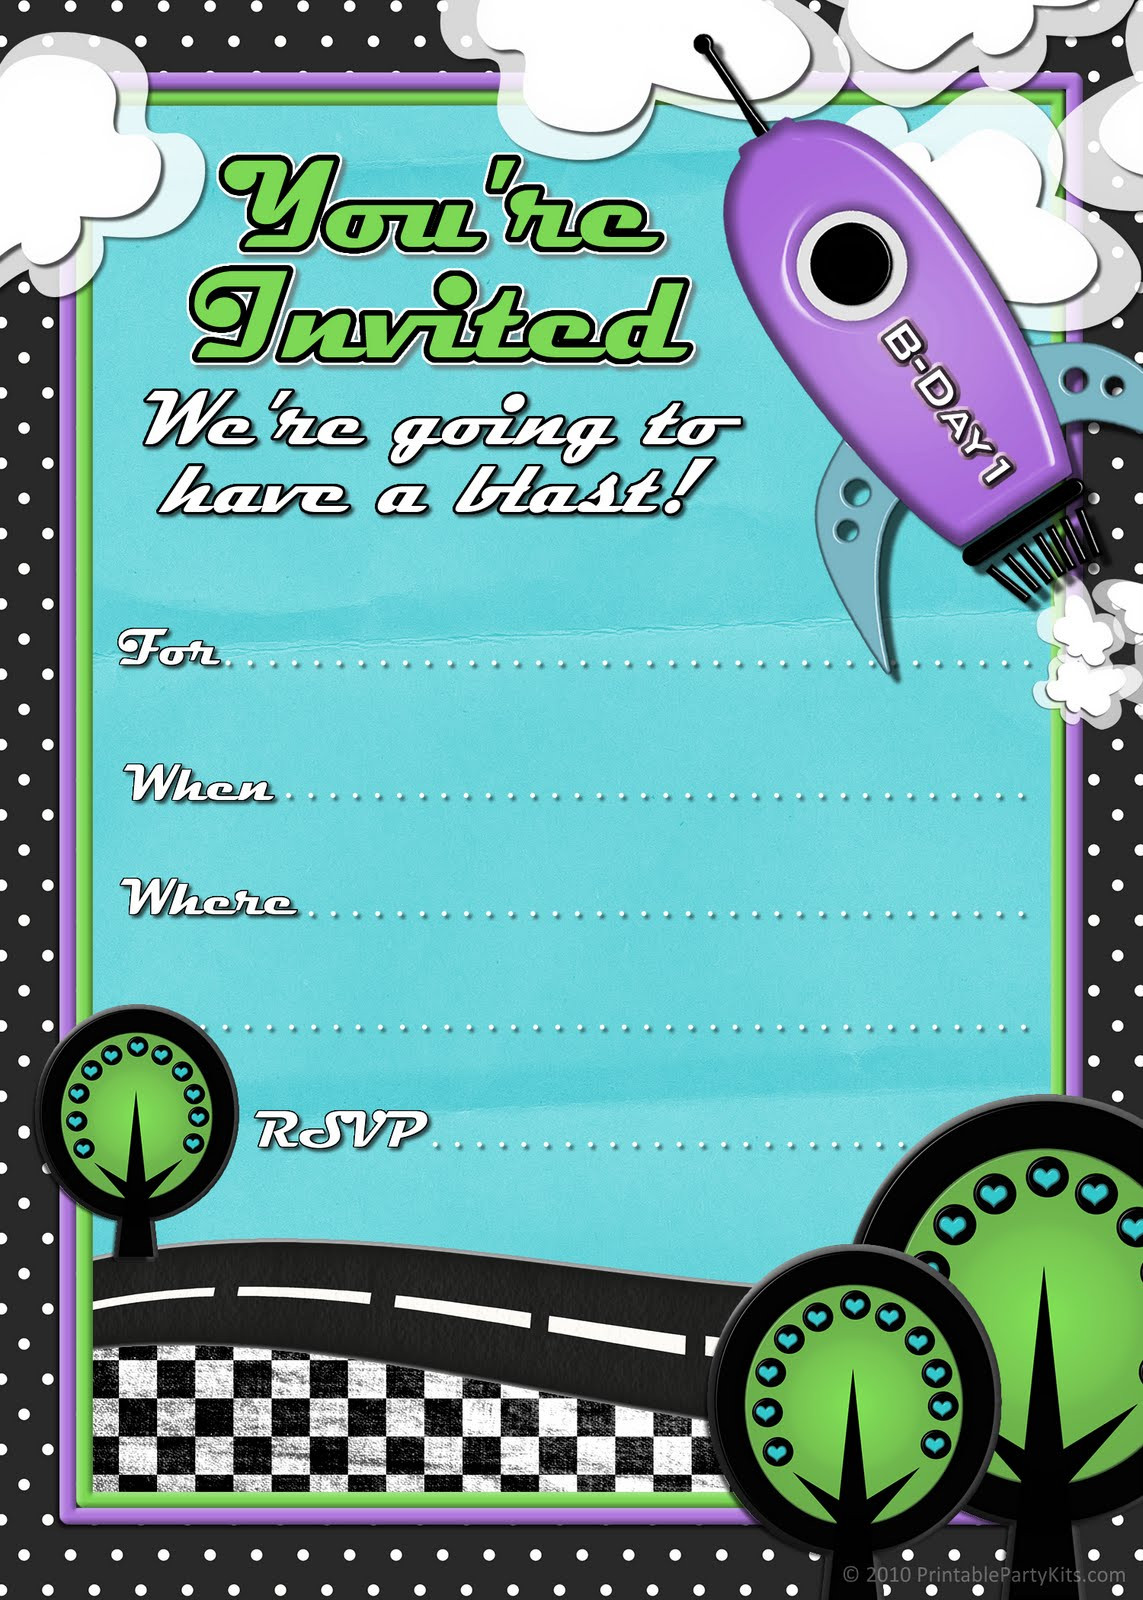 Birthday Party Invitations For Kids  41 Printable Birthday Party Cards & Invitations for Kids